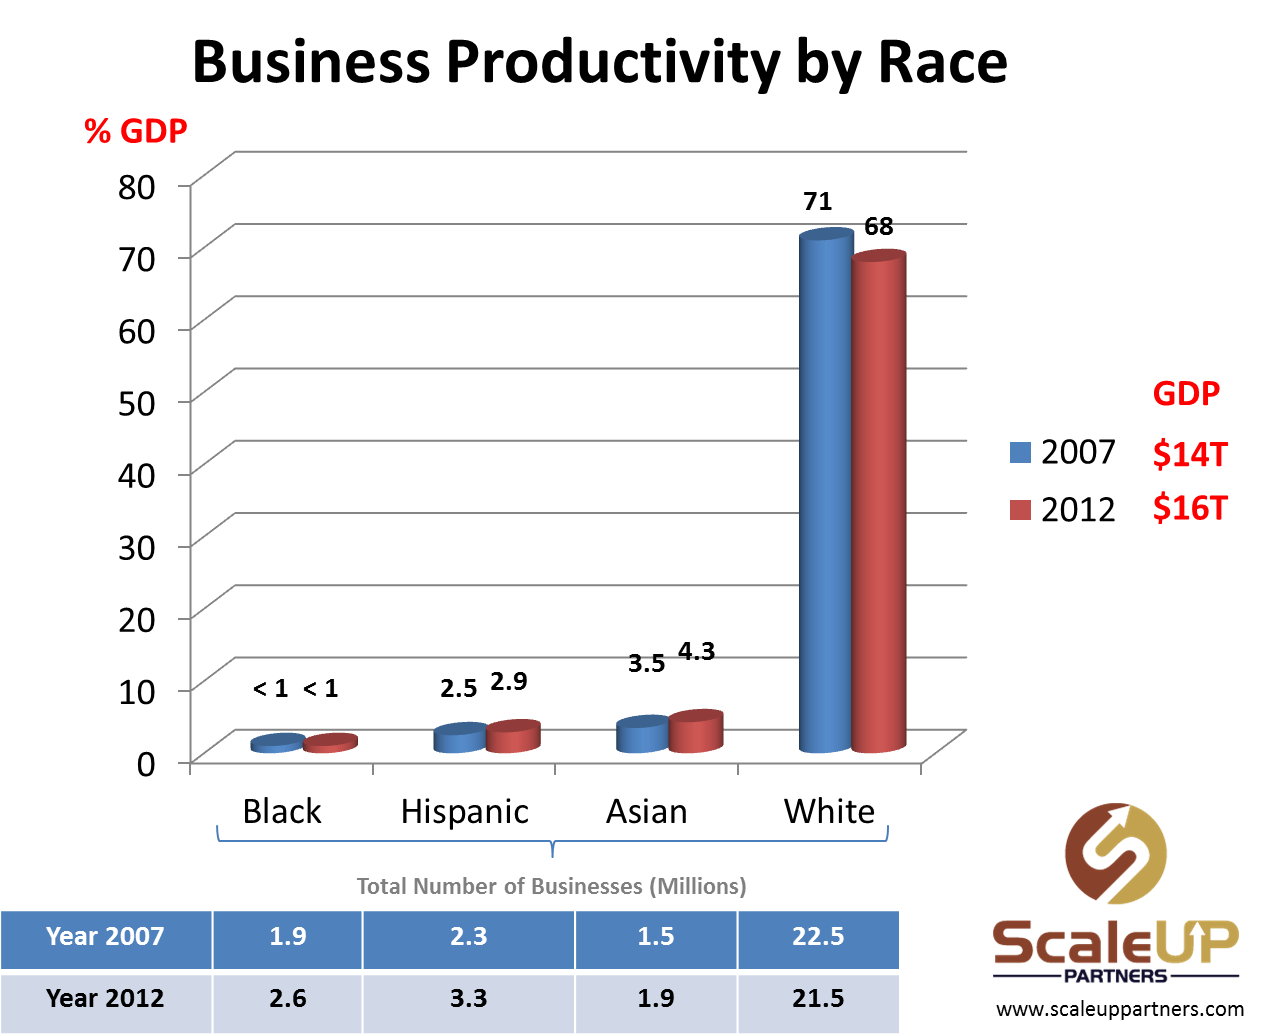 Hispanic and Black American entrepreneurs represent the fastest rate of entrepreneurial growth in America. Yet, by mid-century these two demographics alone will comprise 42% of the nation's population while producing less than 4% of GDP and virtually no job growth. Unless the nation commits to investing in the innovative talent inherent in communities of color at the local level and scaling up their business productivity, America risks losing capacity to sustain her global competitiveness ranking in the world.  Inclusive Competitiveness is a demographically driven national economic imperative we cannot afford to ignore.